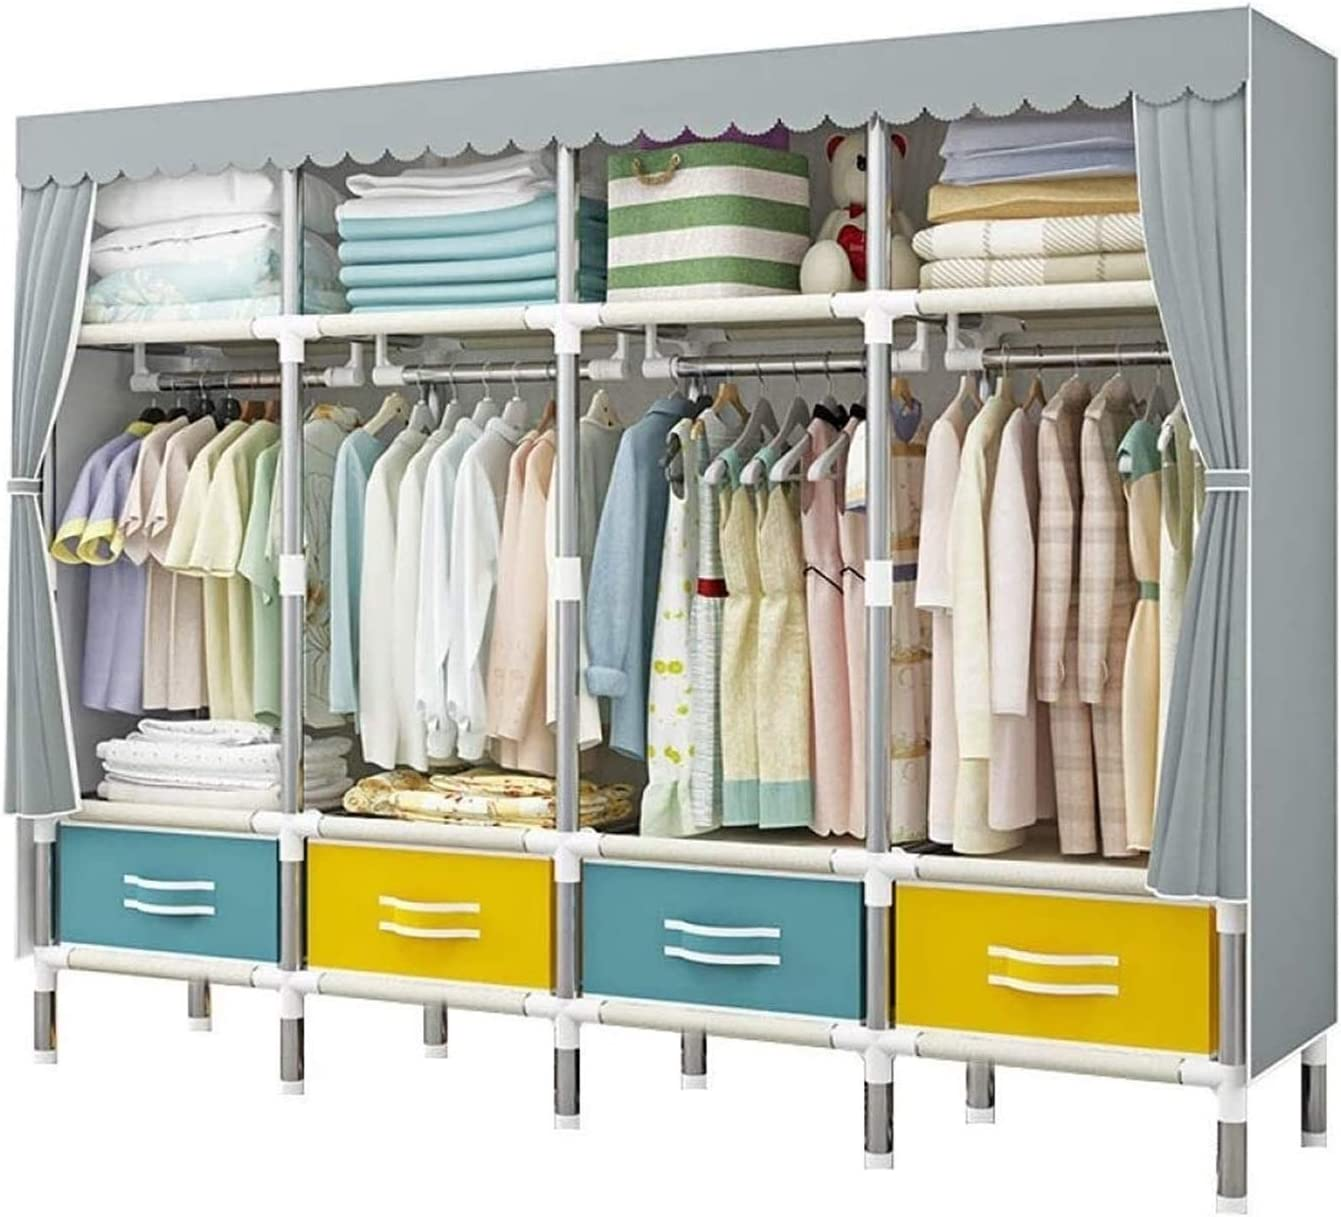 LLCY Portable Closet At the price 2021new shipping free Cloth Wardrobe Bedroom for